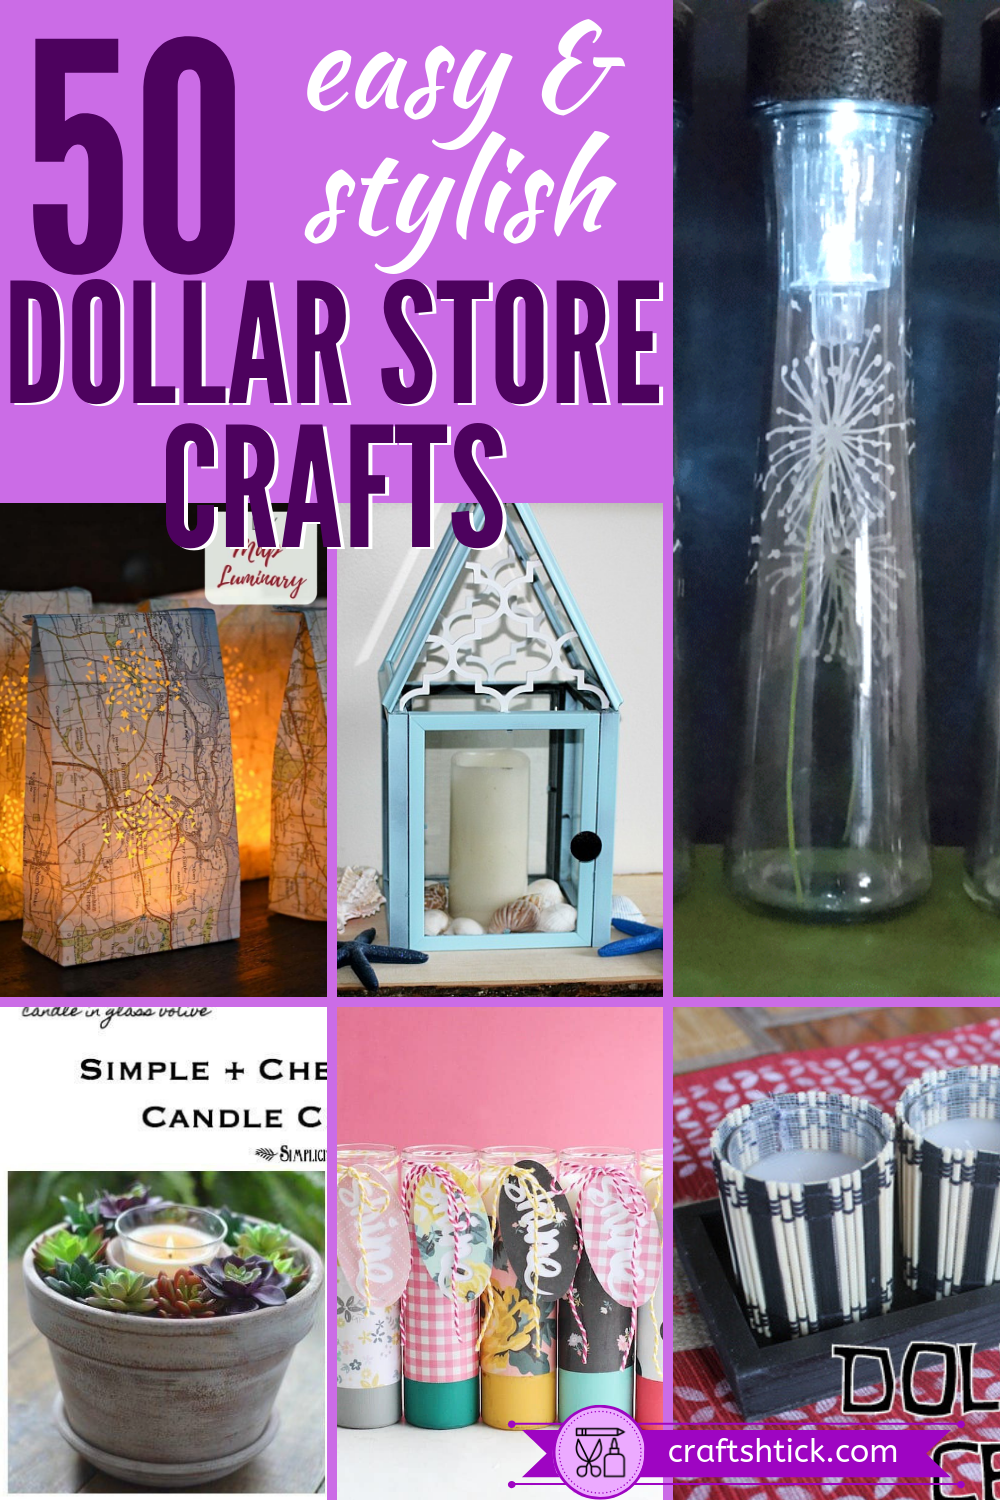 Dollar Tree Crafts And DIY Projects • Craft Shtick -   16 diy projects Dollar Store kids ideas